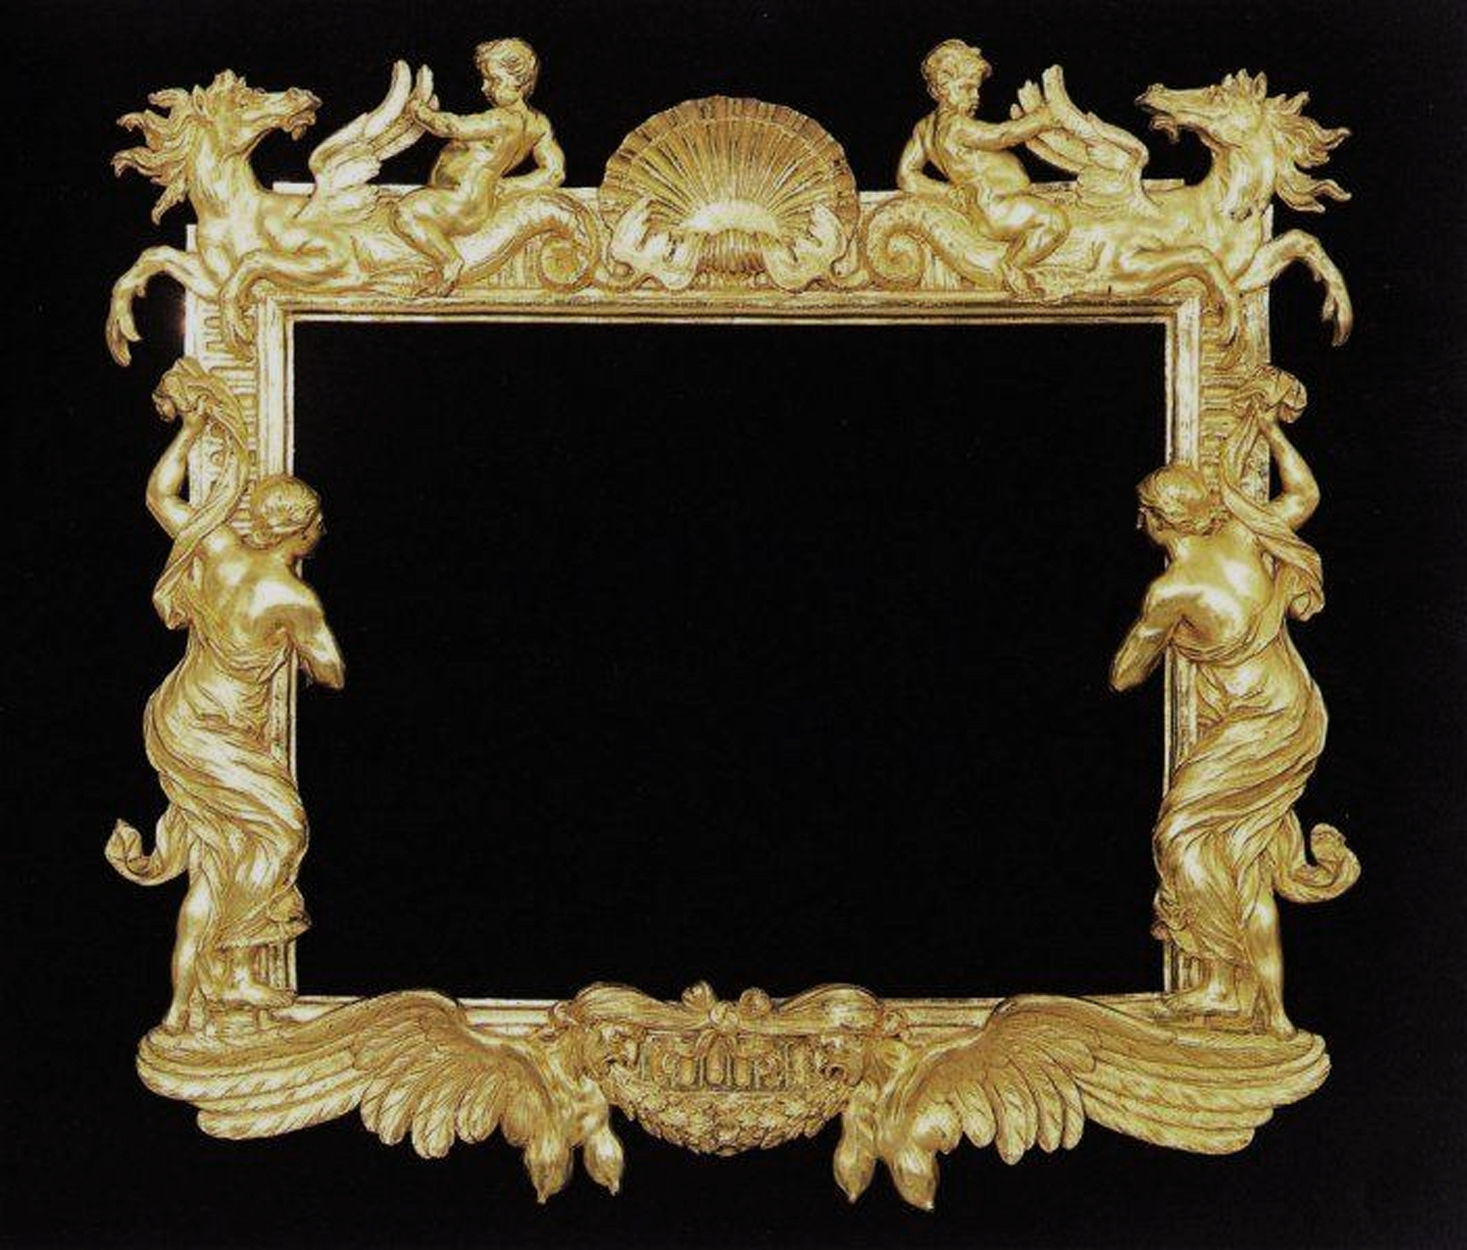 Decorative Arts Baroque Picture Frame 8×10 Profit Small